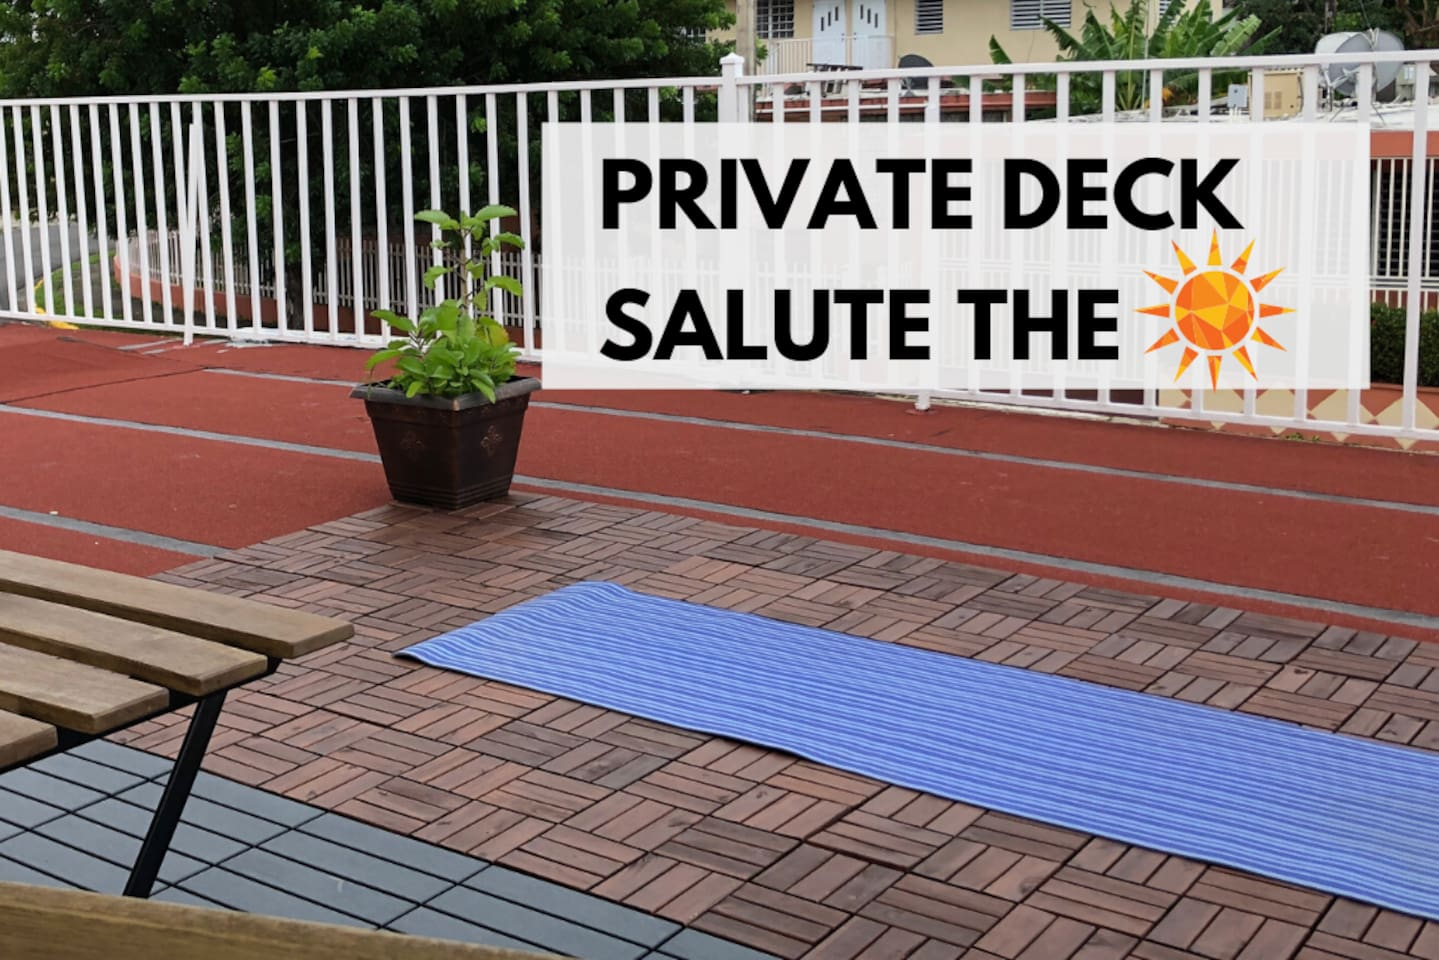 Do Yoga in your private balcony. Mat provided.